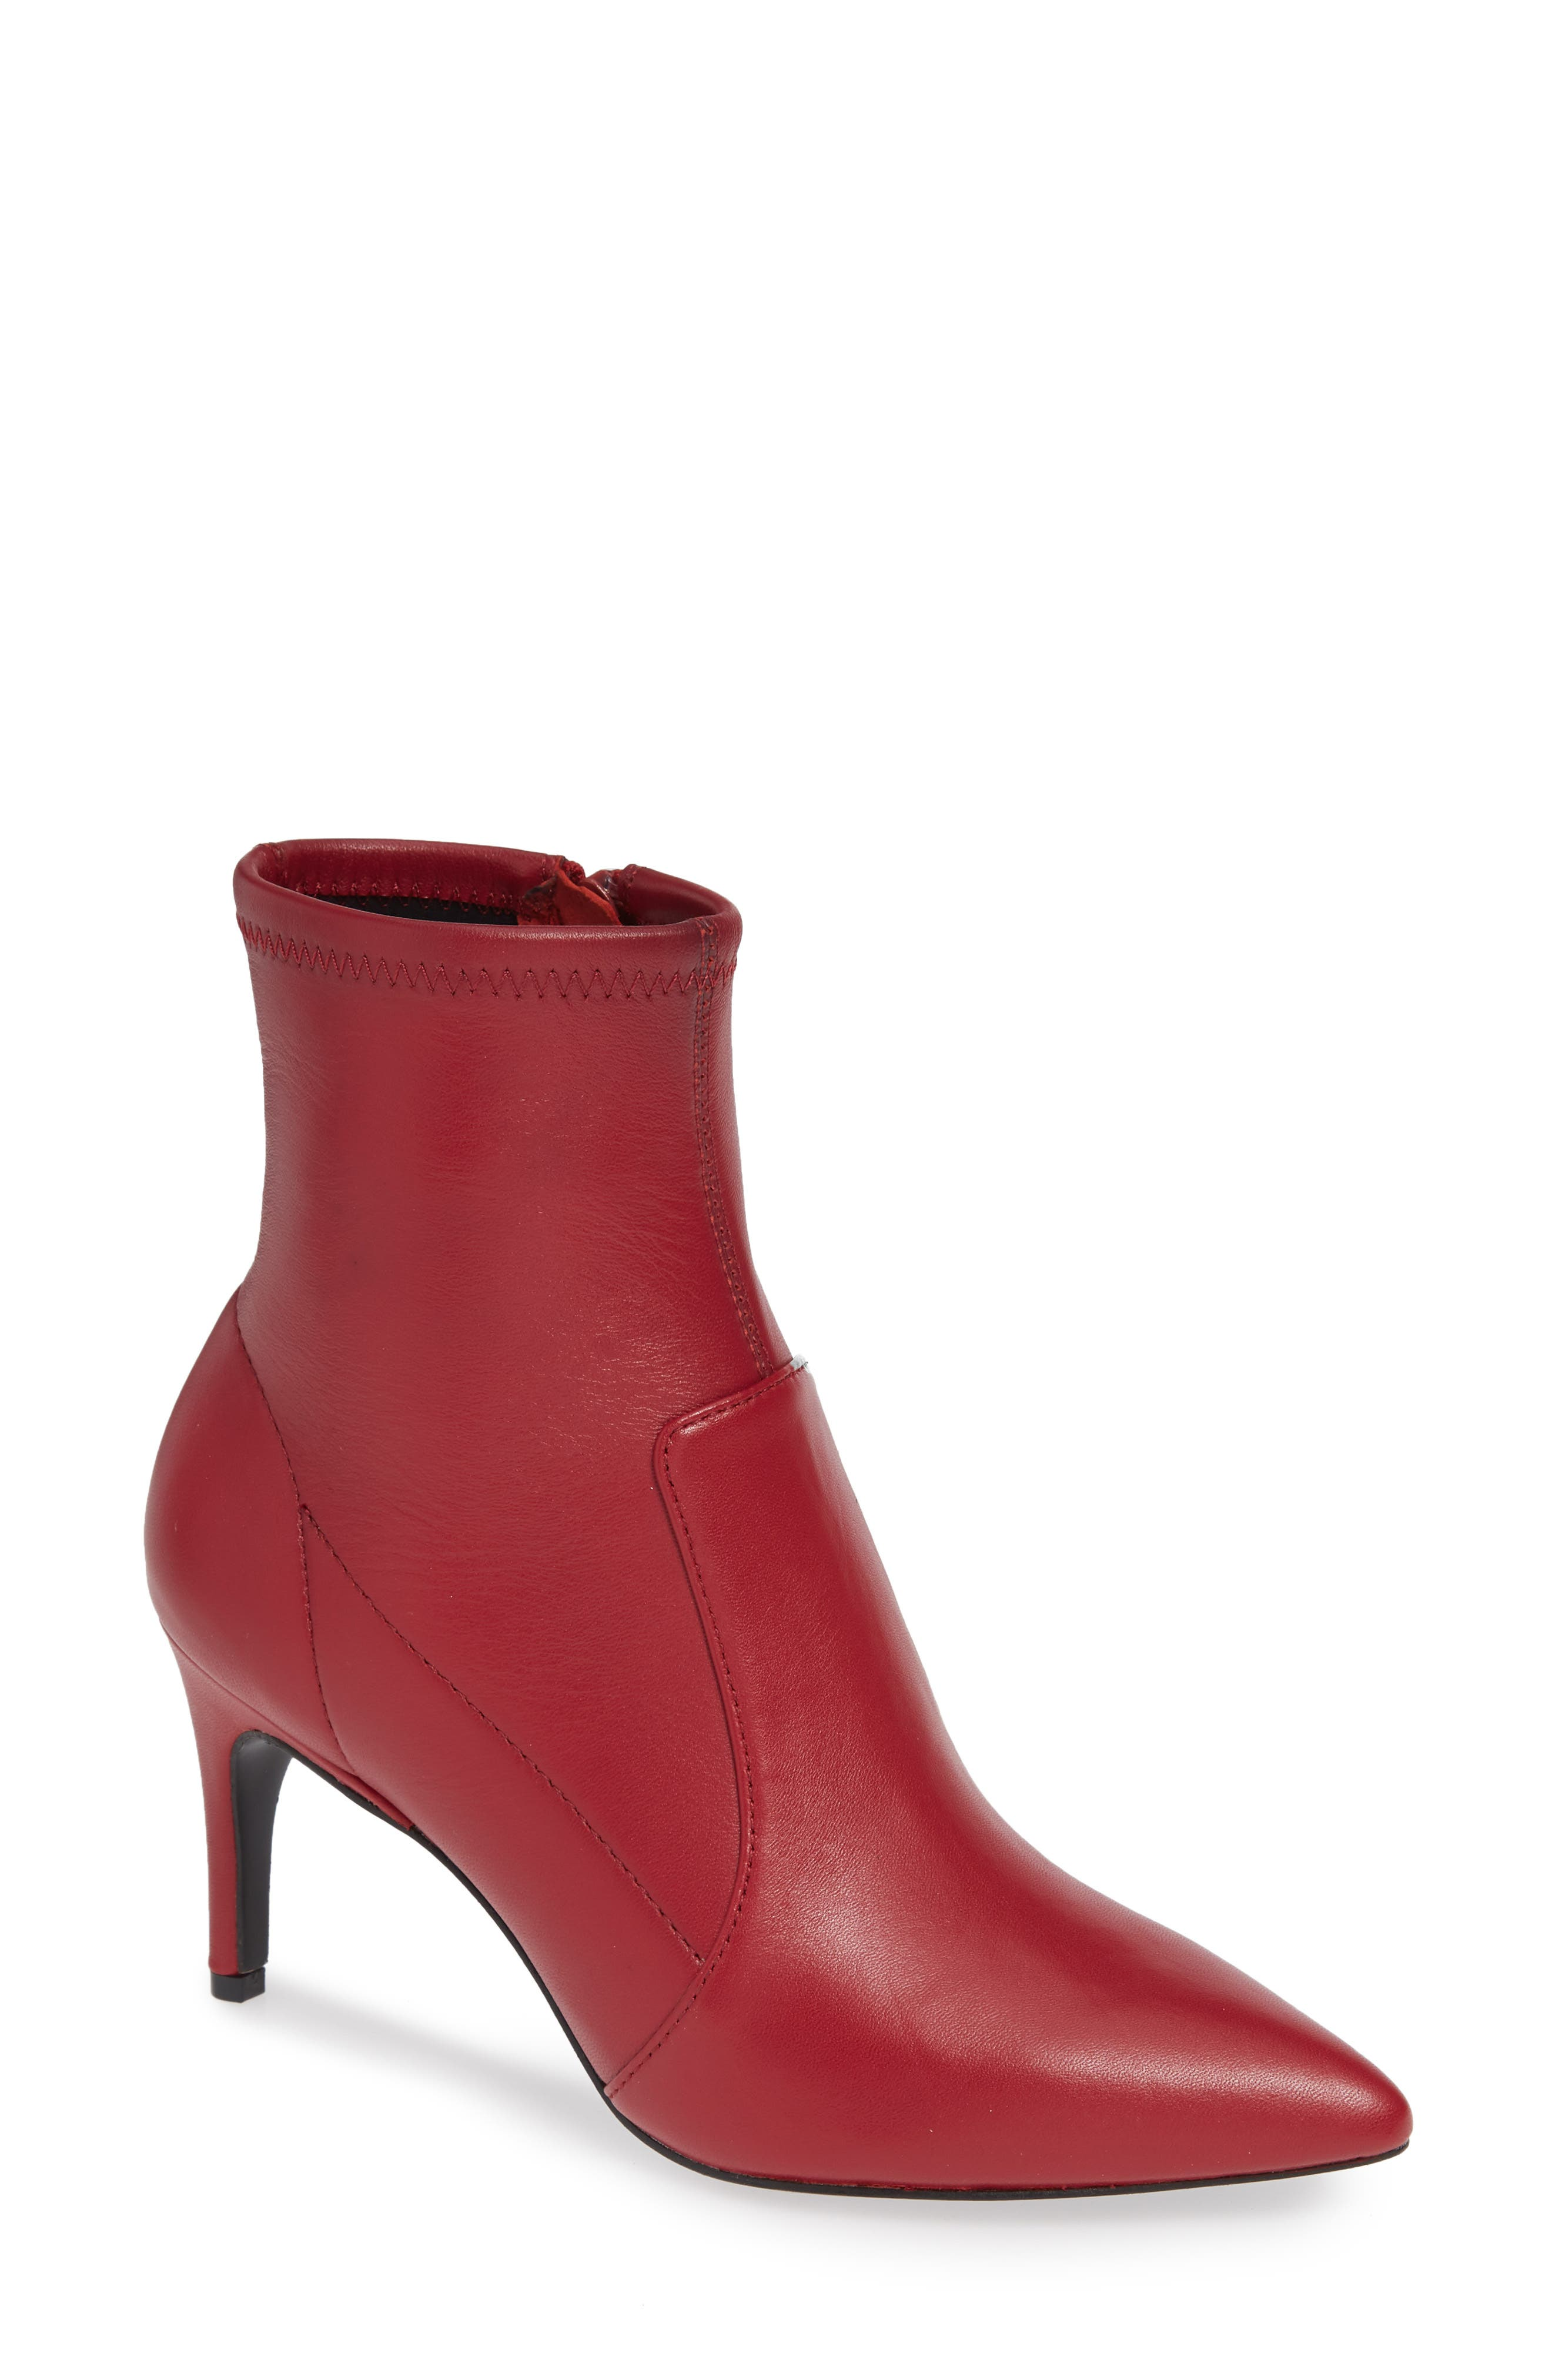 Women'S Pride Pointed Toe Booties in Scarlet Leather